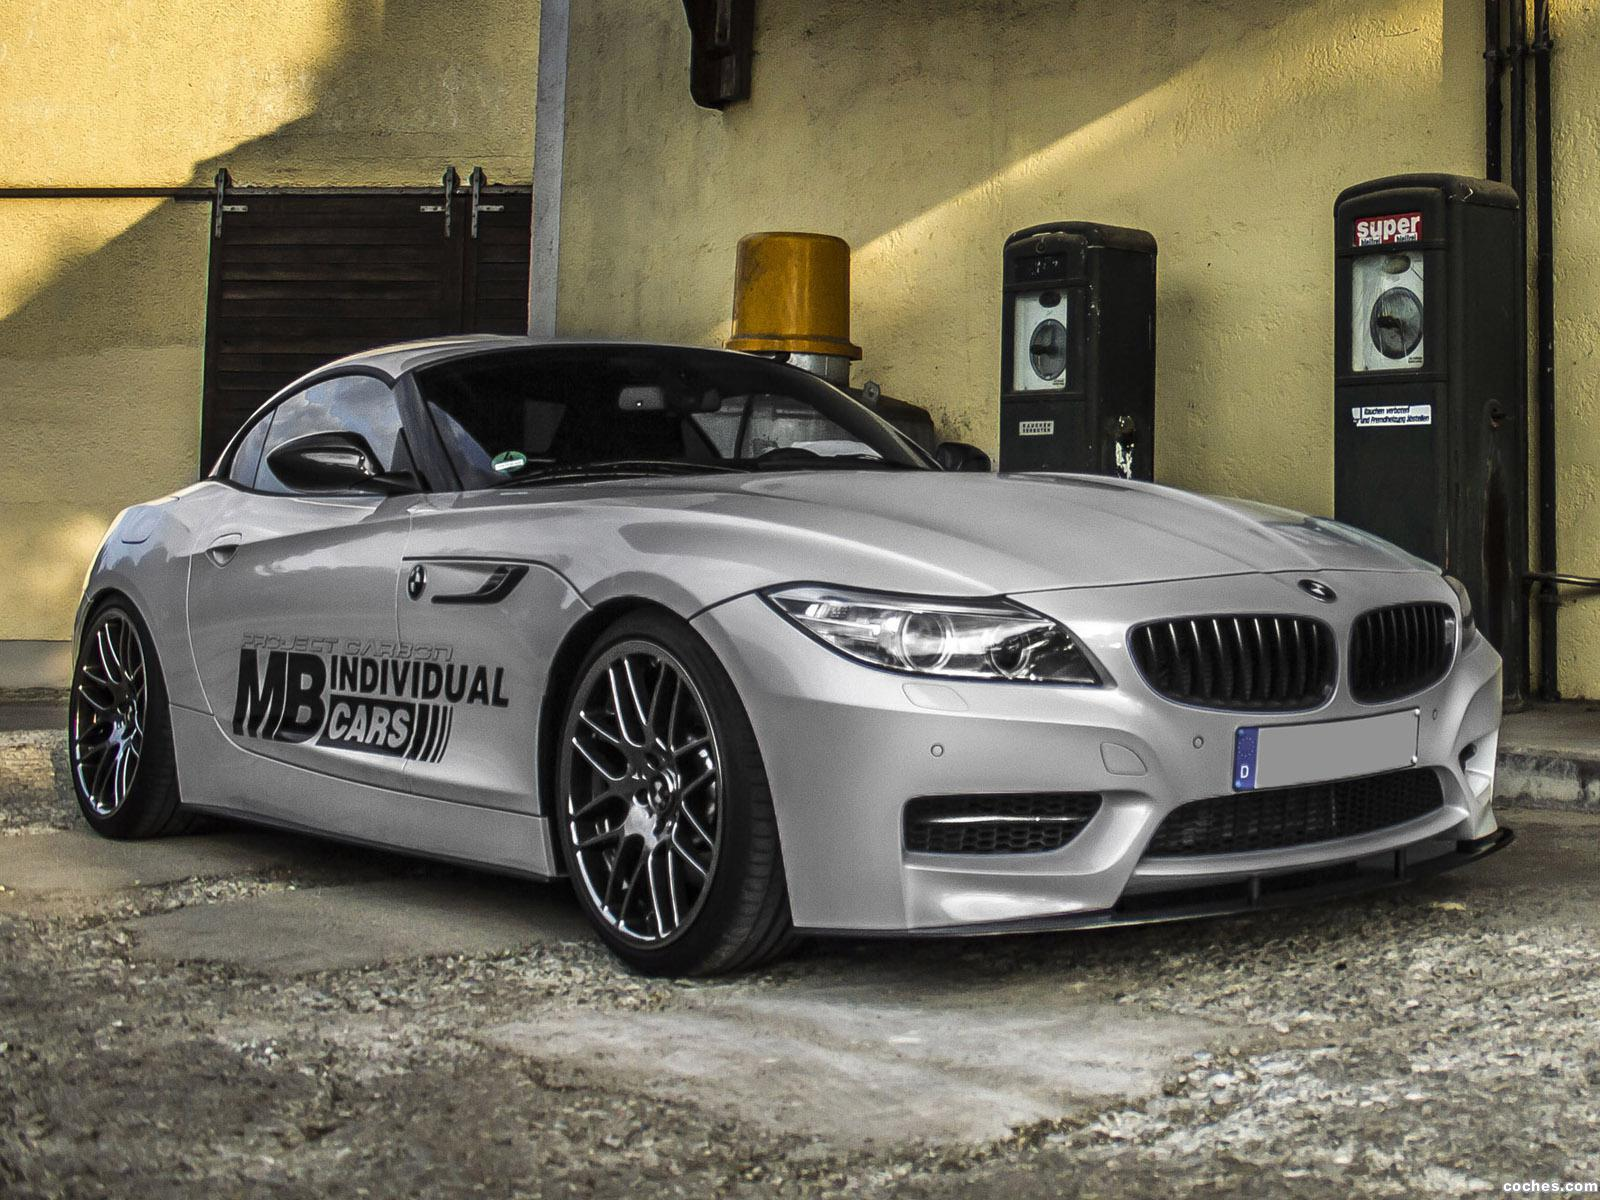 Foto 0 de BMW Z4 Carbon Packet MB Individual Cars 2013